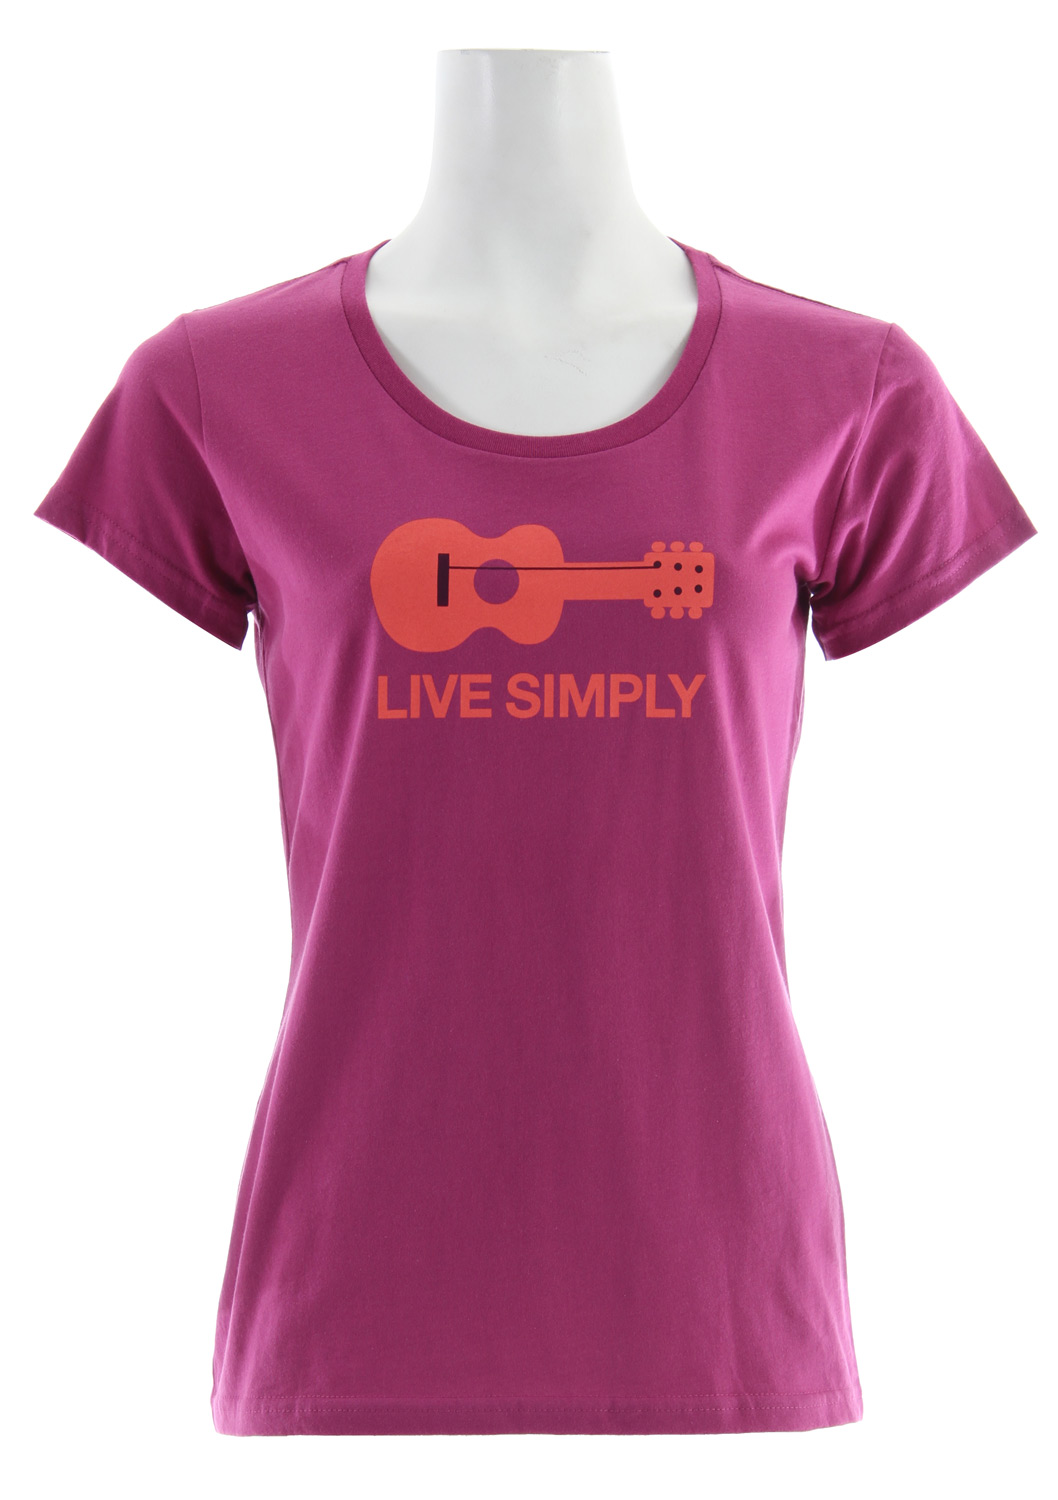 Live life unplugged. The Live Simply Guitar T-Shirt is made of our lightweight 4.4-oz soft, ringspun 100% organic cotton fabric, with artwork by Geoff McFetridge. The Anika fit features a scooped neck and a contoured shape for a feminine silhouette. Taped shoulder seams and double stitched sleeves and hem provide durability; coverstitching at sleeve and neck add a clean finish. Recyclable through the Common Threads Recycling ProgramKey Features of the Patagonia Live Simply Guitar T-Shirt: Screen-print inks are PVC- and phthalate-free Taped shoulder seams for comfort Artist: Geoff McFetridge 4.4-oz 100% organic cotton. Recyclable through the Common Threads Recycling Program 110 g (3.9 oz) Made in USA. Organic cotton is produced using techniques that are healthy and safe for the environment and the people who work and live near the fields where it's grown. Organic cotton is never grown with synthetic chemical fertilizers, pesticides, herbicides or defoliants, nor is it genetically modified in any way. At Patagonia we seek to build the best product and cause no unnecessary harm. That's our mission statement, and it takes many forms. As it applies to making products, we work hard to source materials and use processes that are less harmful to the Earth without compromising quality. Because to us, quality is not only how well a product performs and holds up, but also how it's made. - $17.95